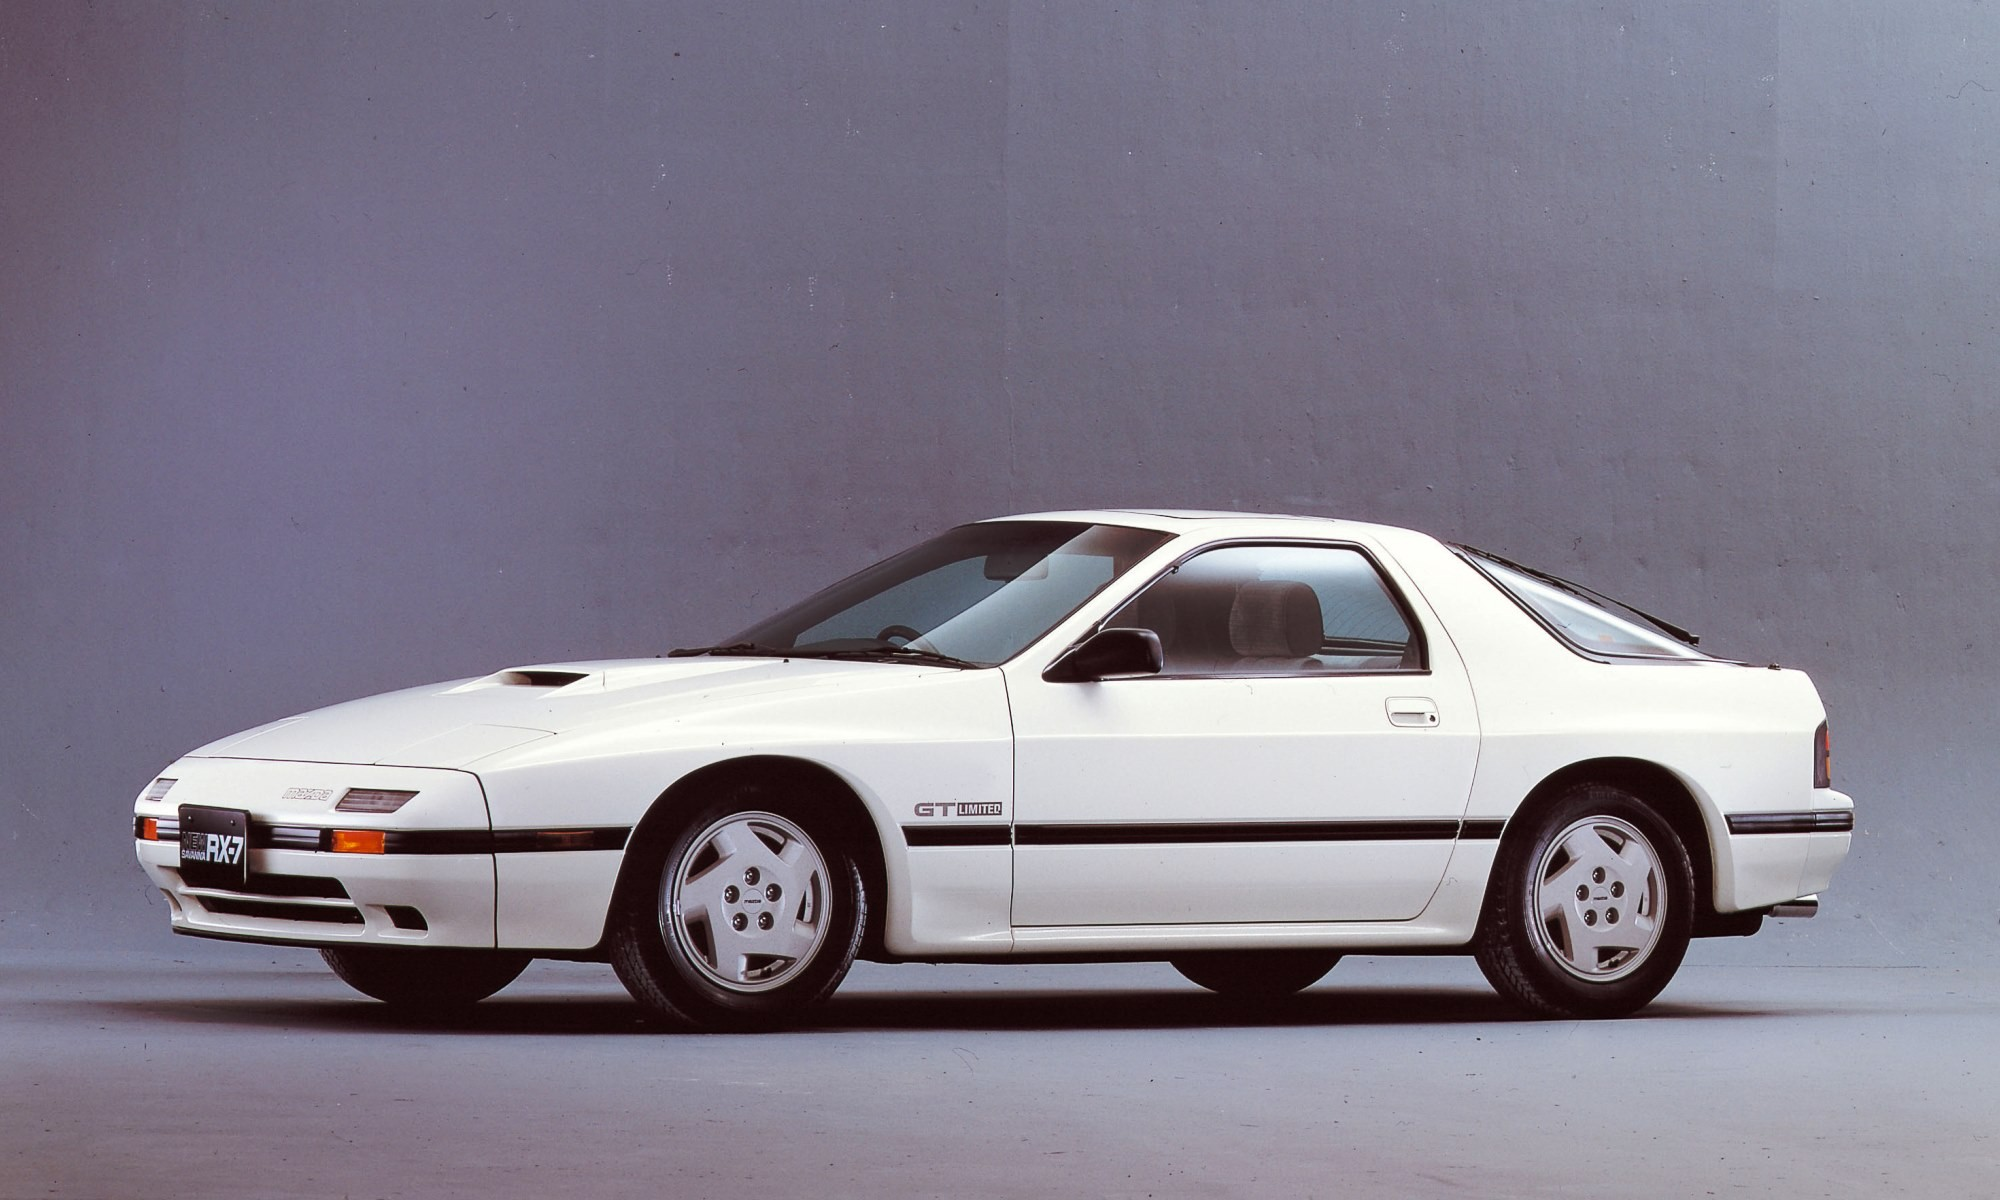 Second generation Mazda RX-7